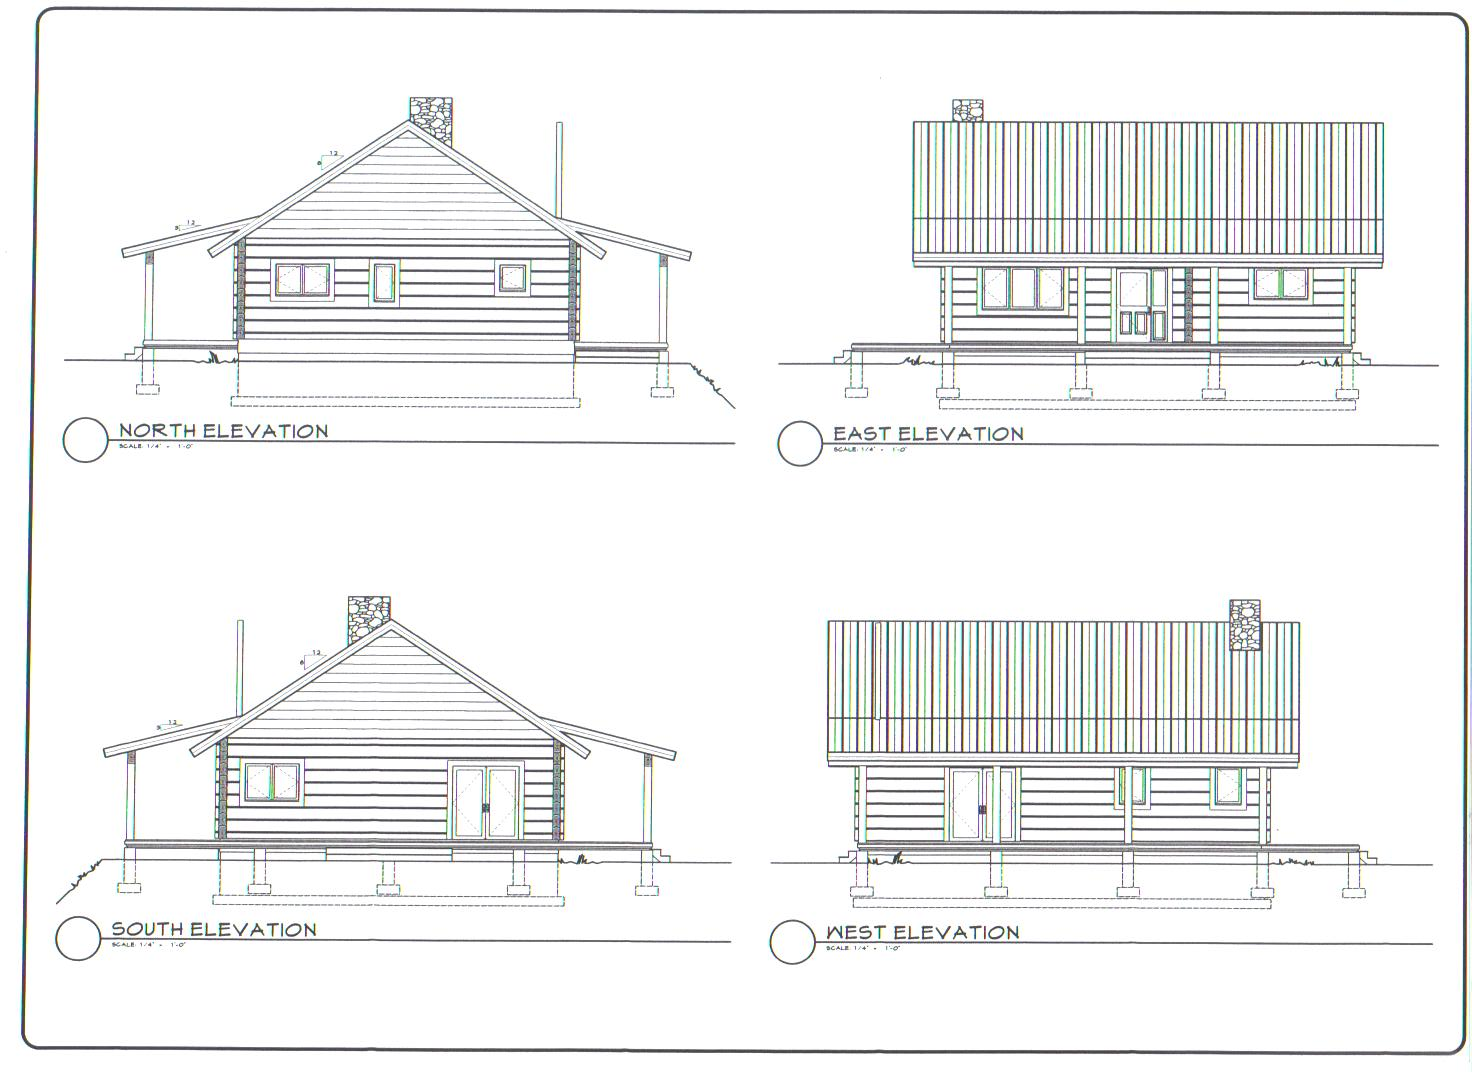 Plan elevations